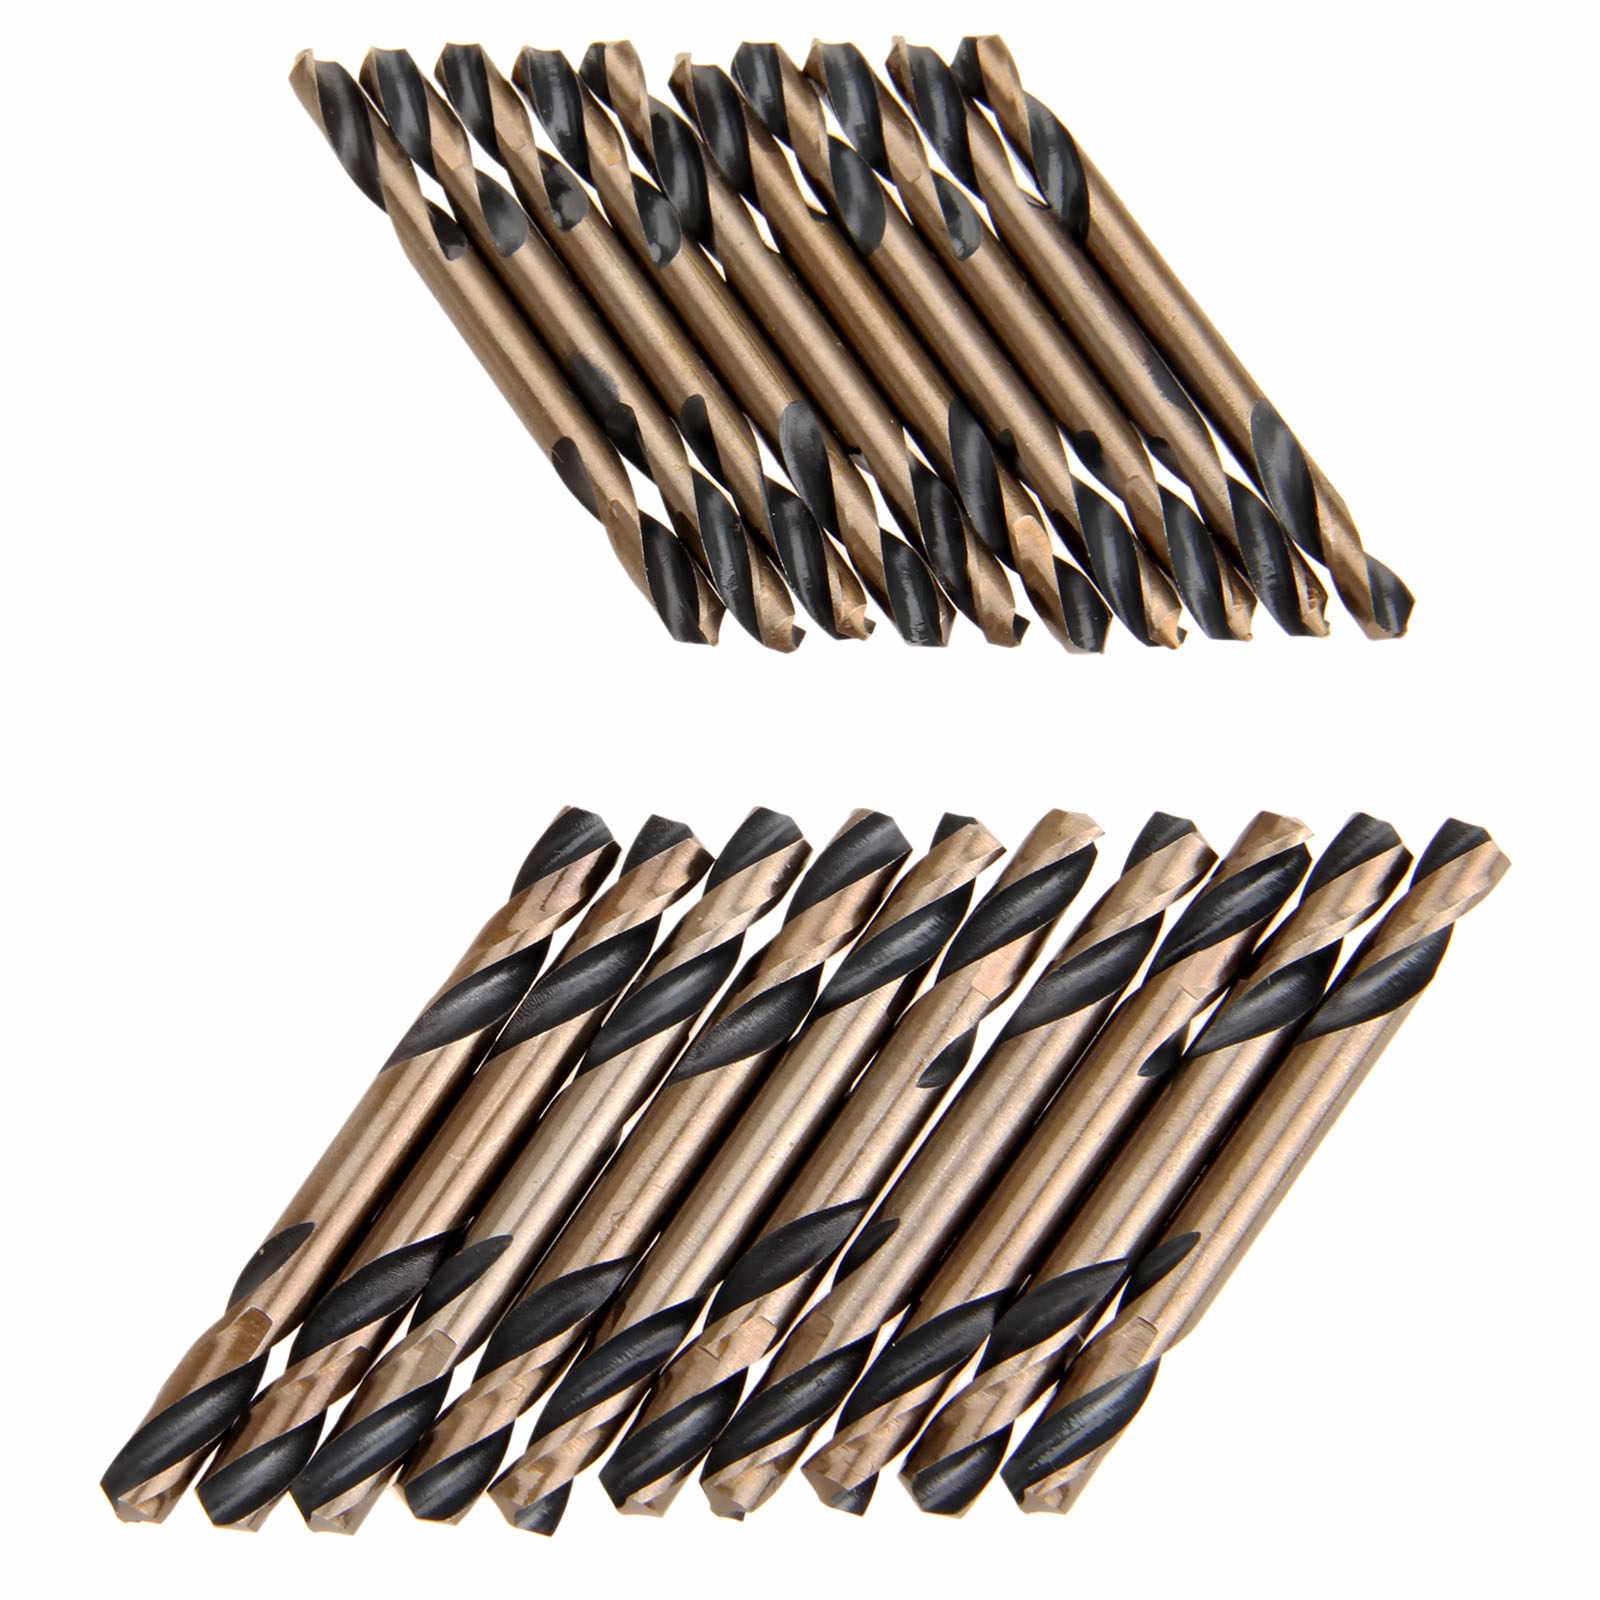 10Pcs 5mm HSS Drill Bits Double Ended for Metal Stainless Steel Iron Working